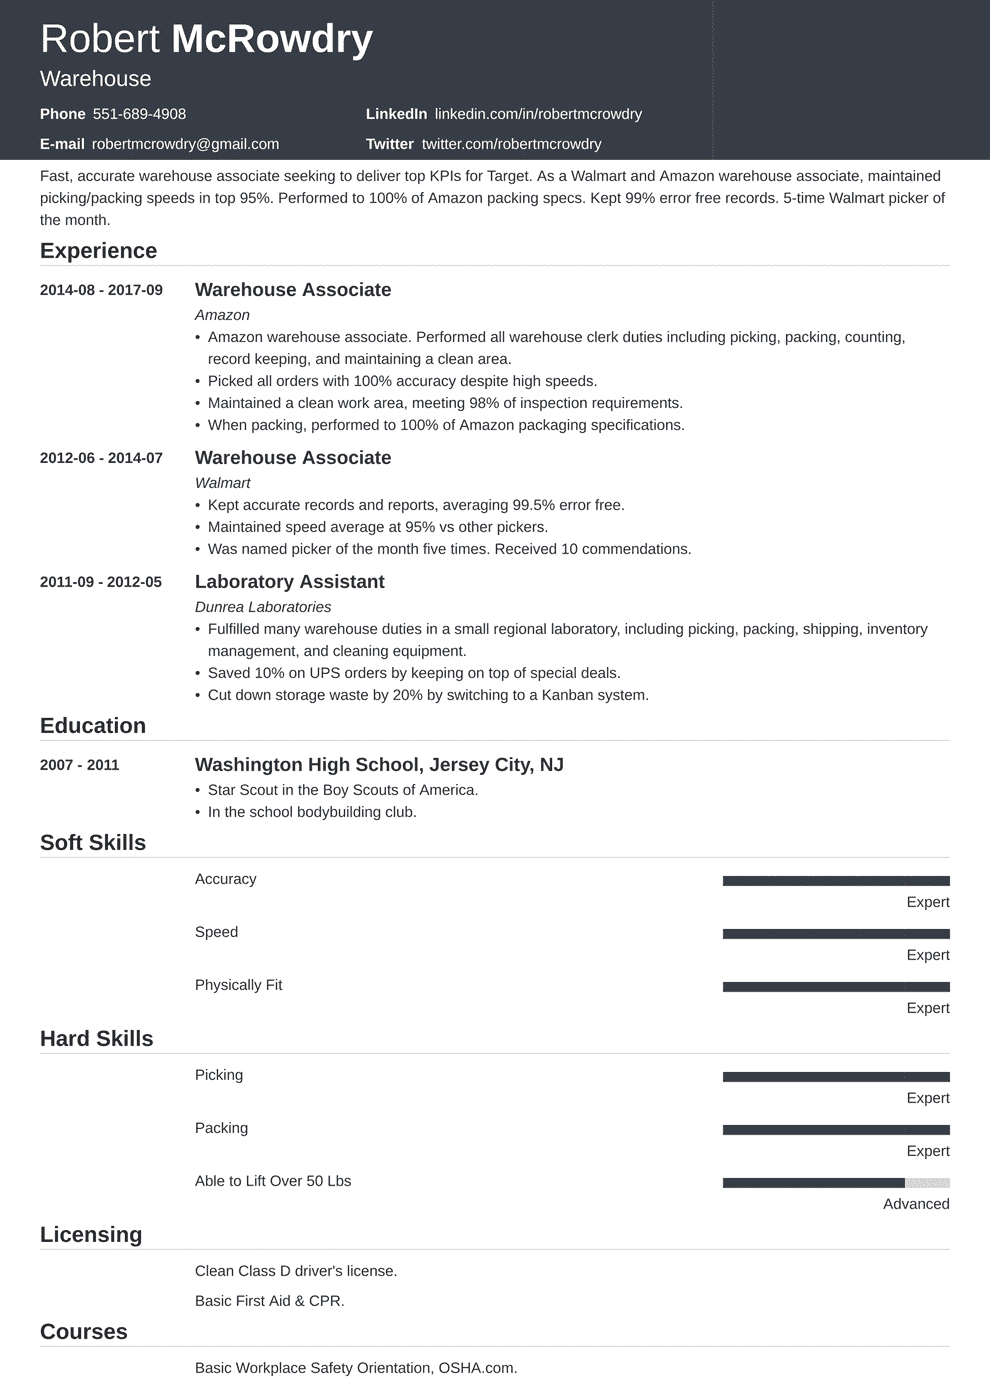 warehouse resume template free 2019 warehouse manager resume templates 2020 warehouse clerk resume templates warehouse worker resume templates warehouse resume examples templates